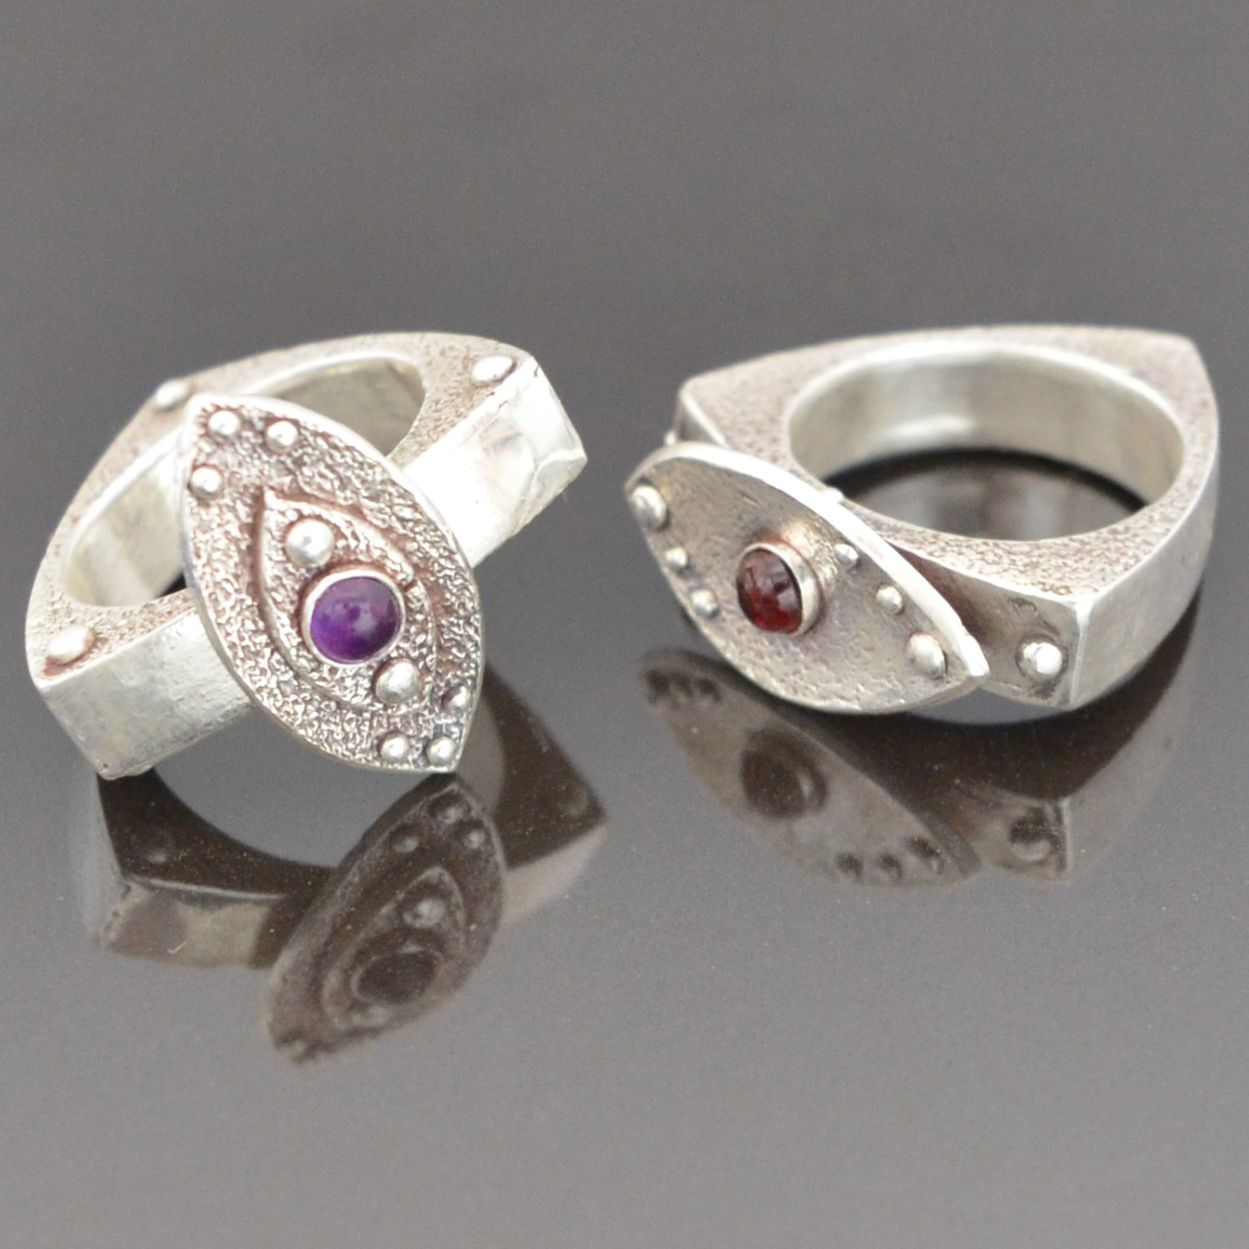 Infinity Rings by Tracey Spurgin of Craftworx Jewellery Workshops